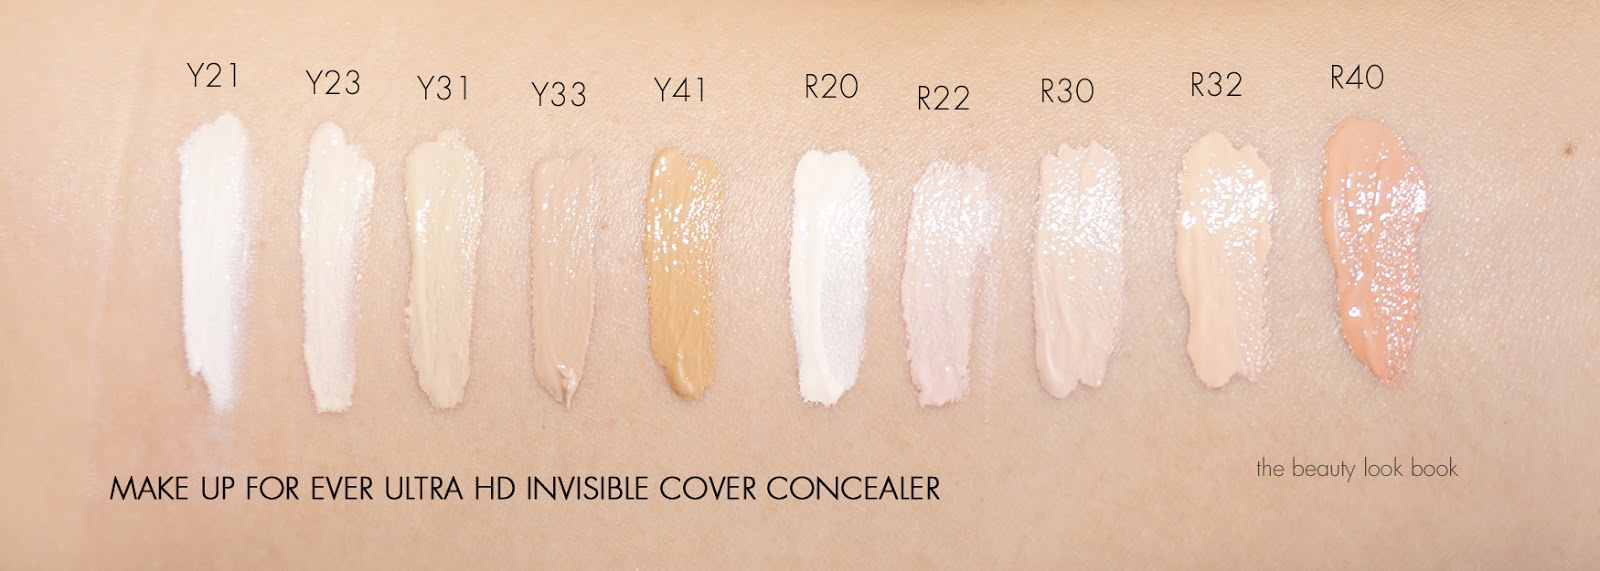 Make Up For Ever Ultra Hd Concealer The Beauty Look Book